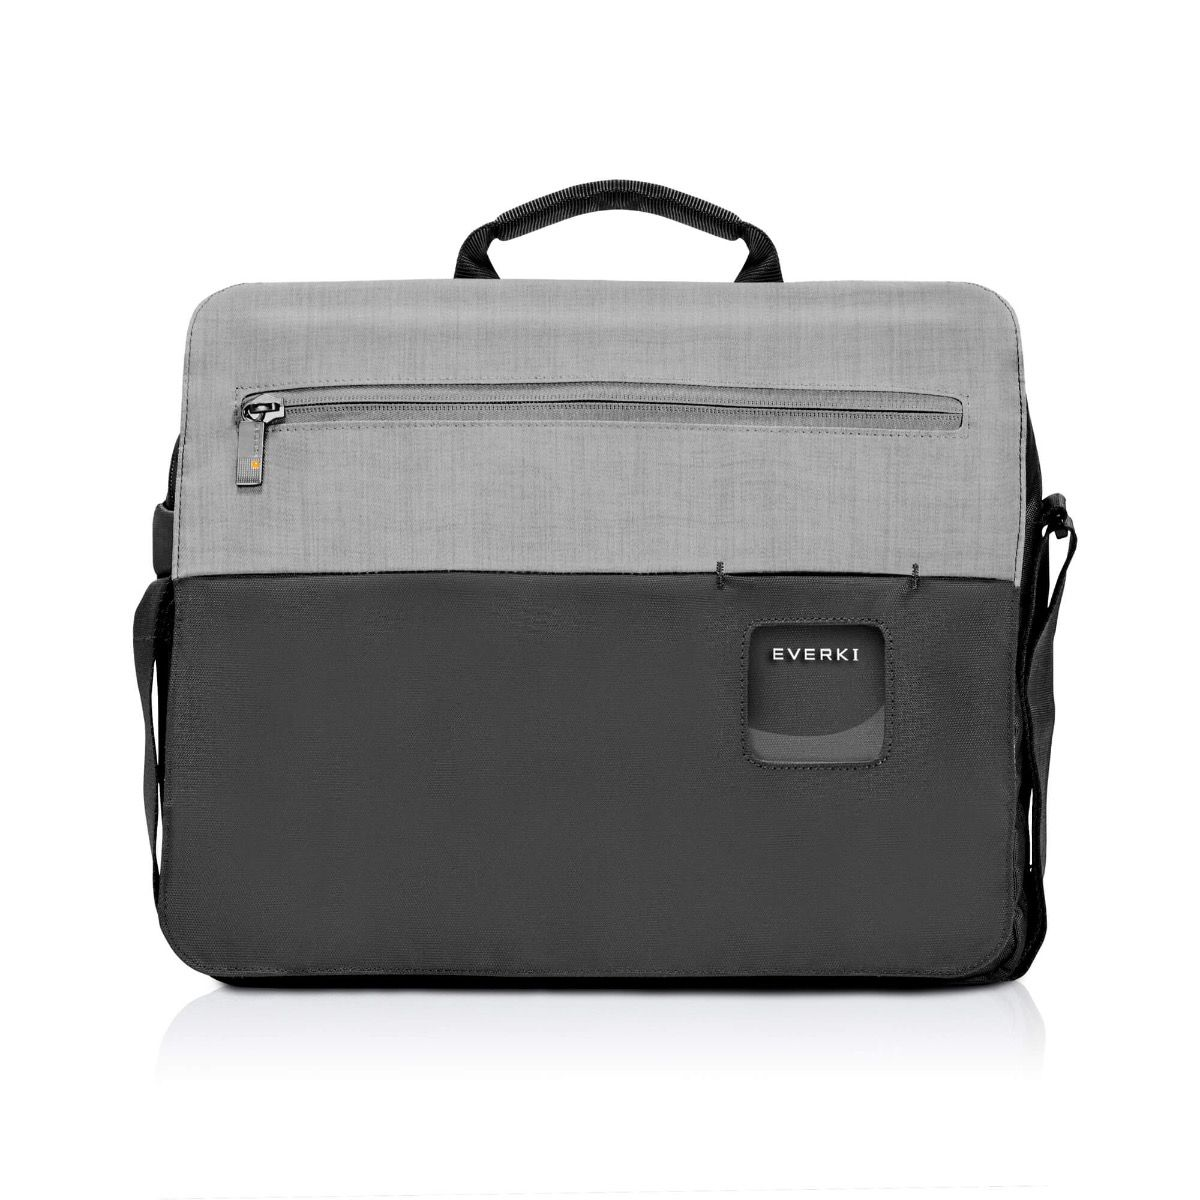 EVERKI ContemPRO 14 Inch Black Laptop Shoulder Bag